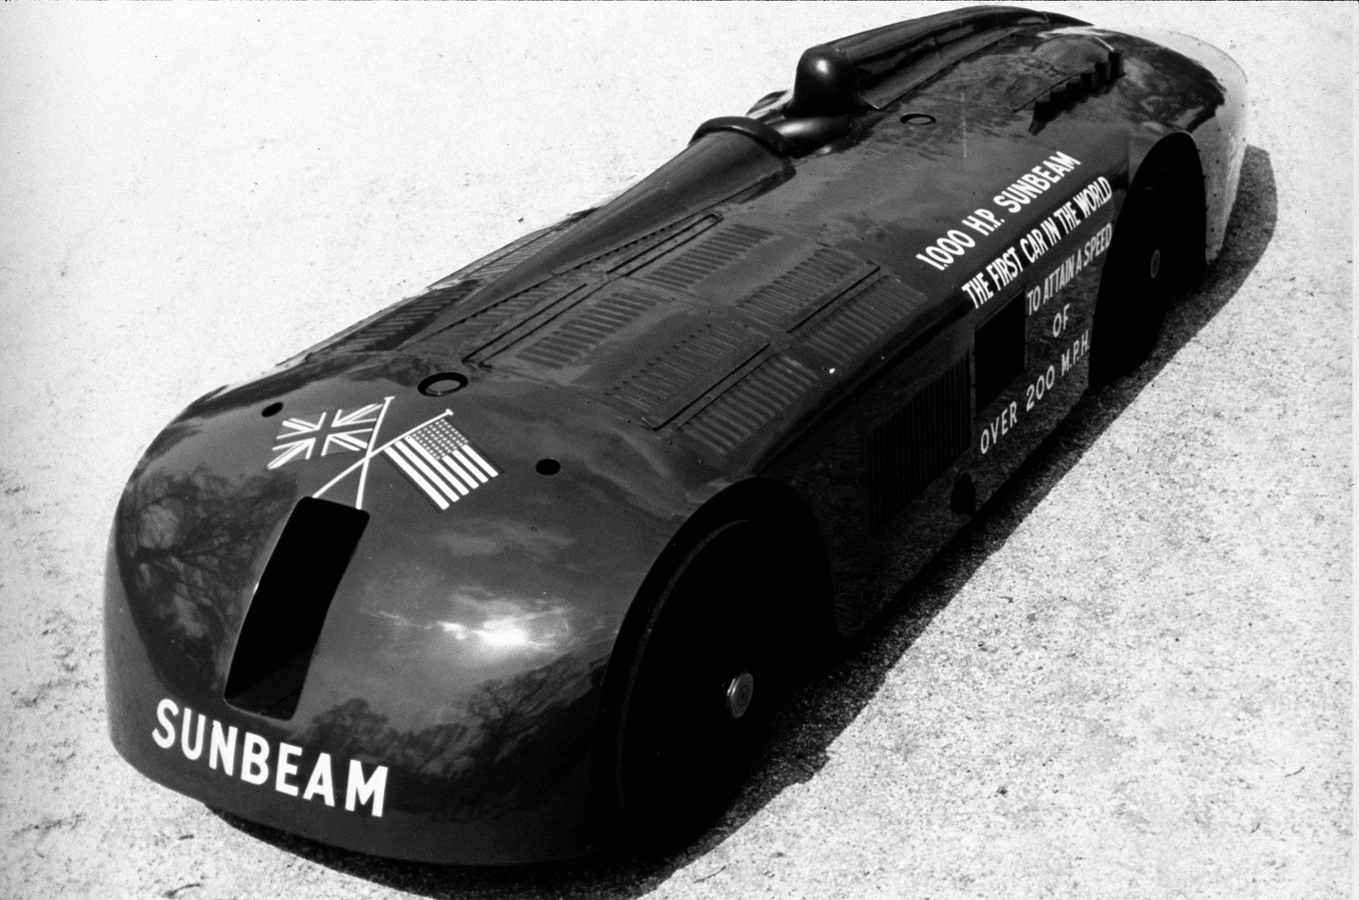 The Sunbeam, pictured in 1927 after breaking the 200mph barrier